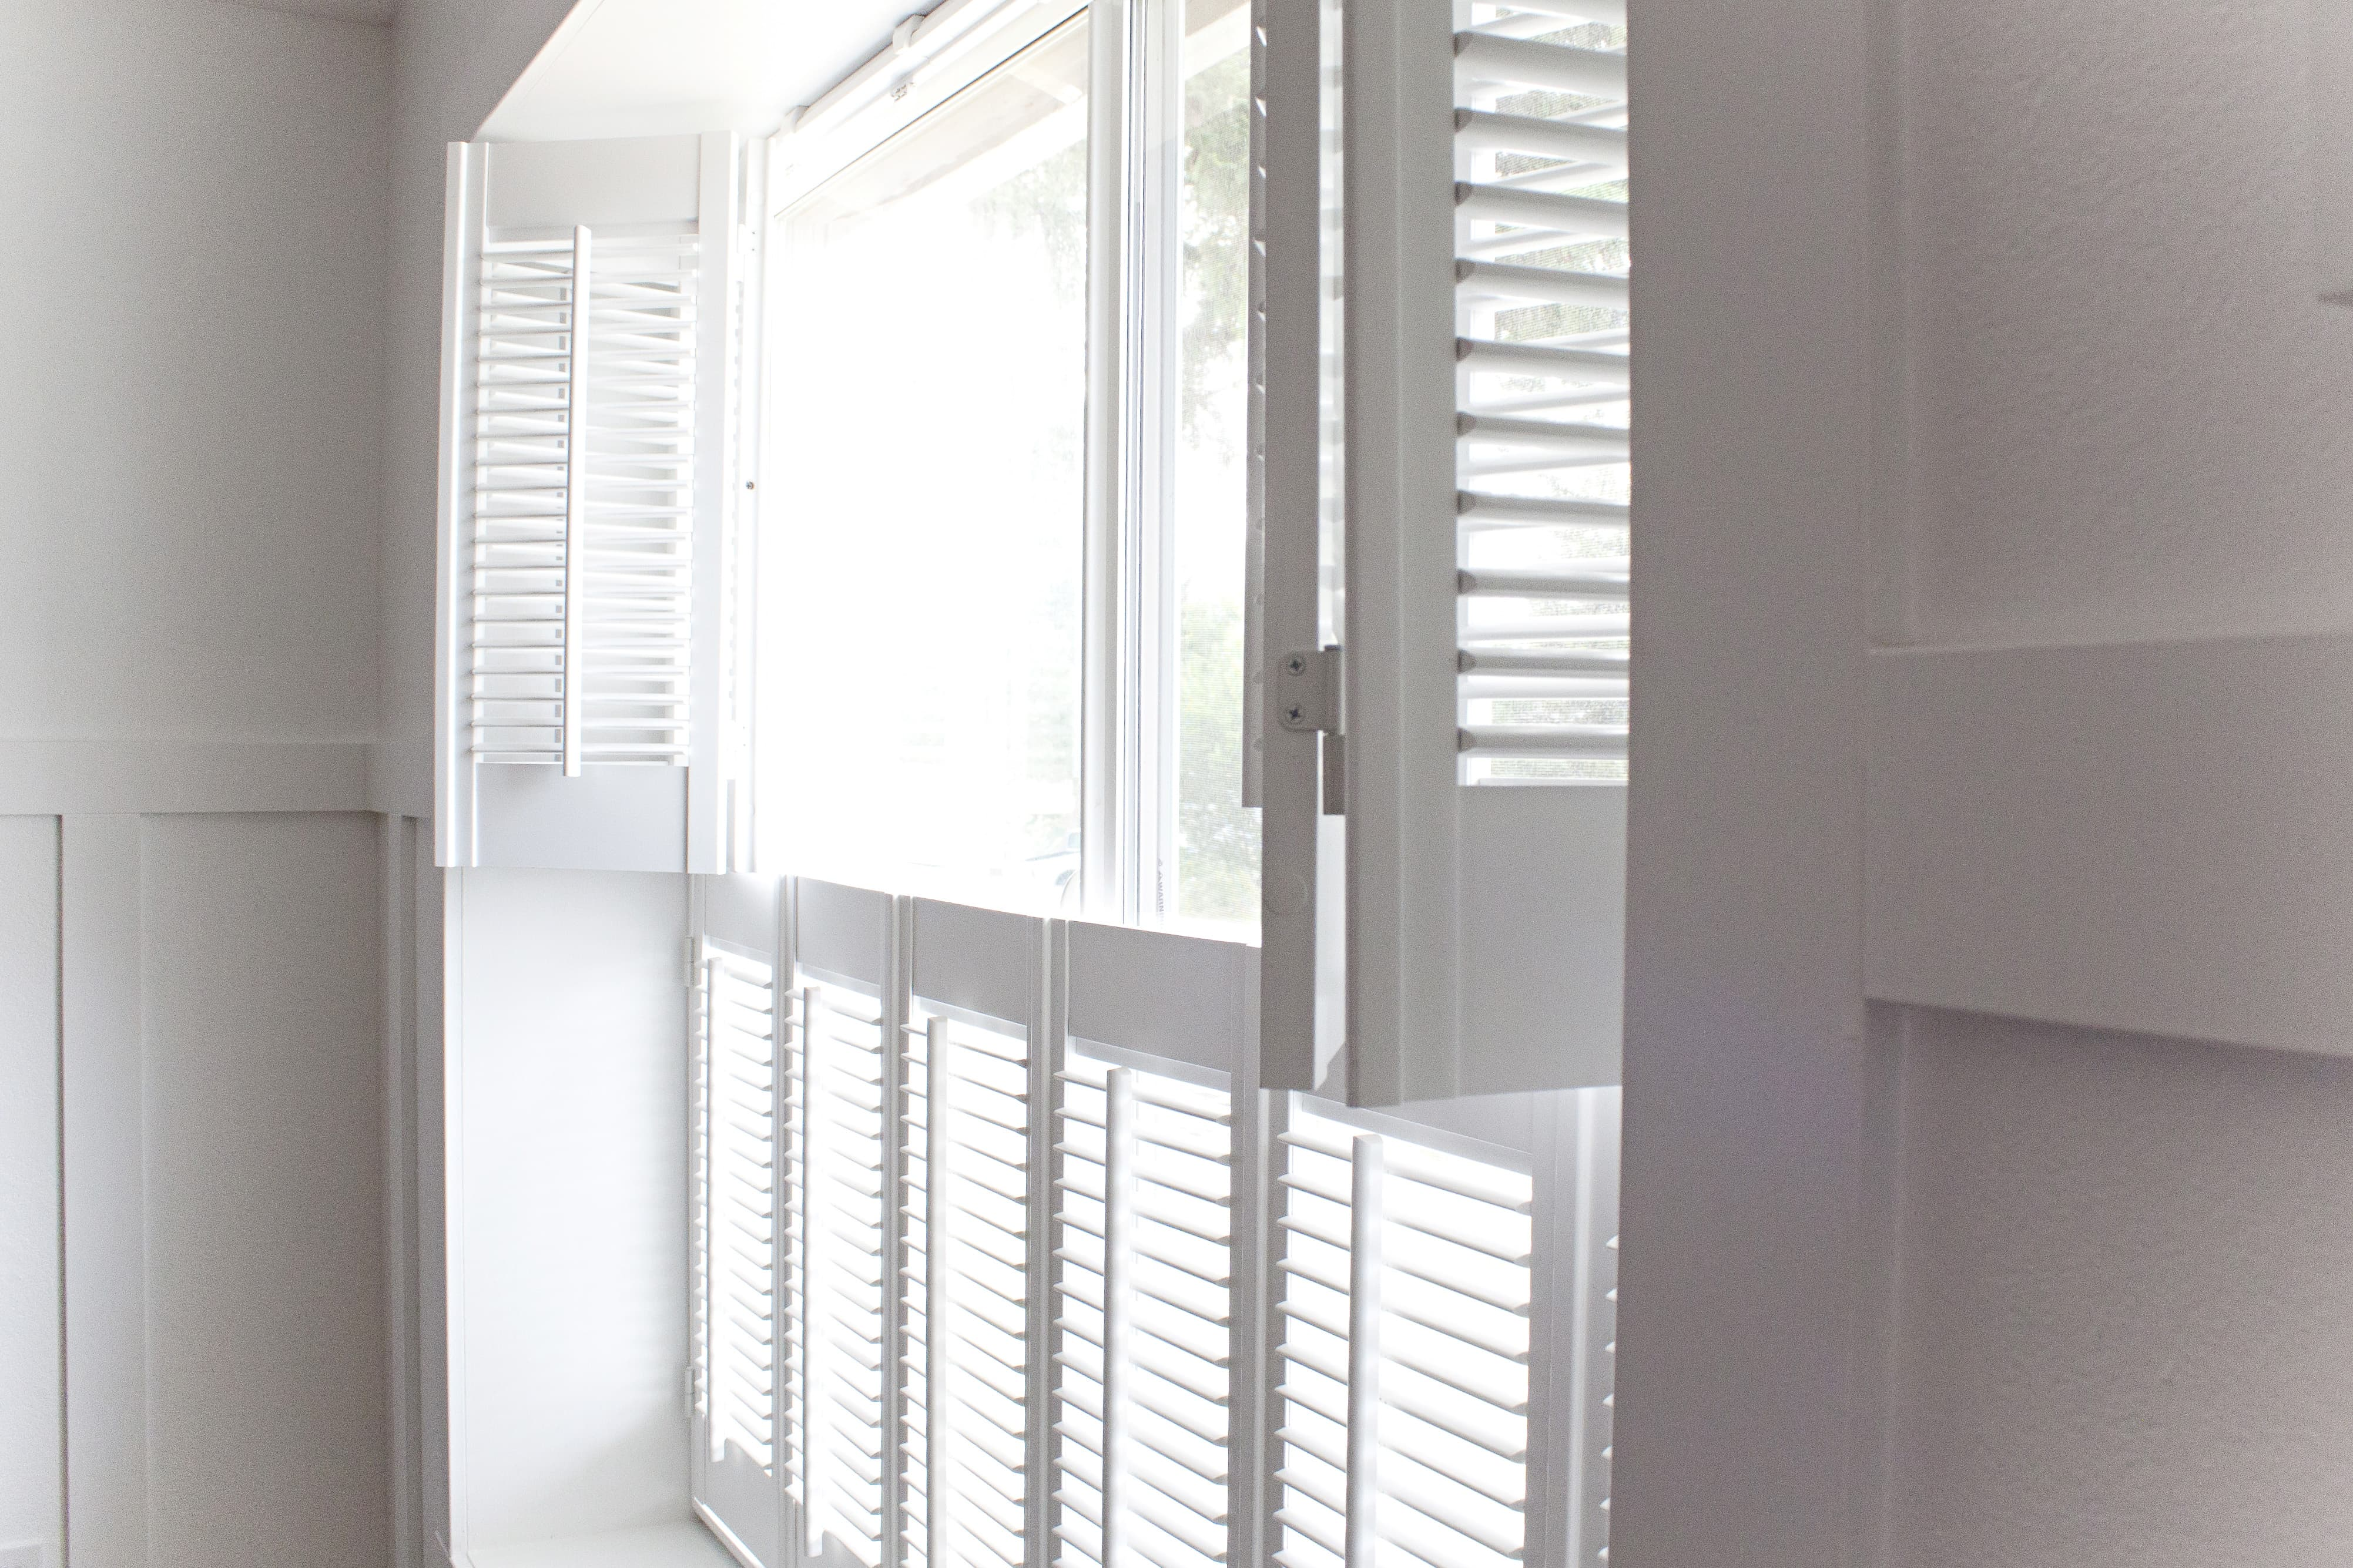 Divider Rails Are Another Available Option For Your Shutter Panels. A  Divider Rail Is A Stationary Strip That Allows You To Open The Top Louvers  While ...